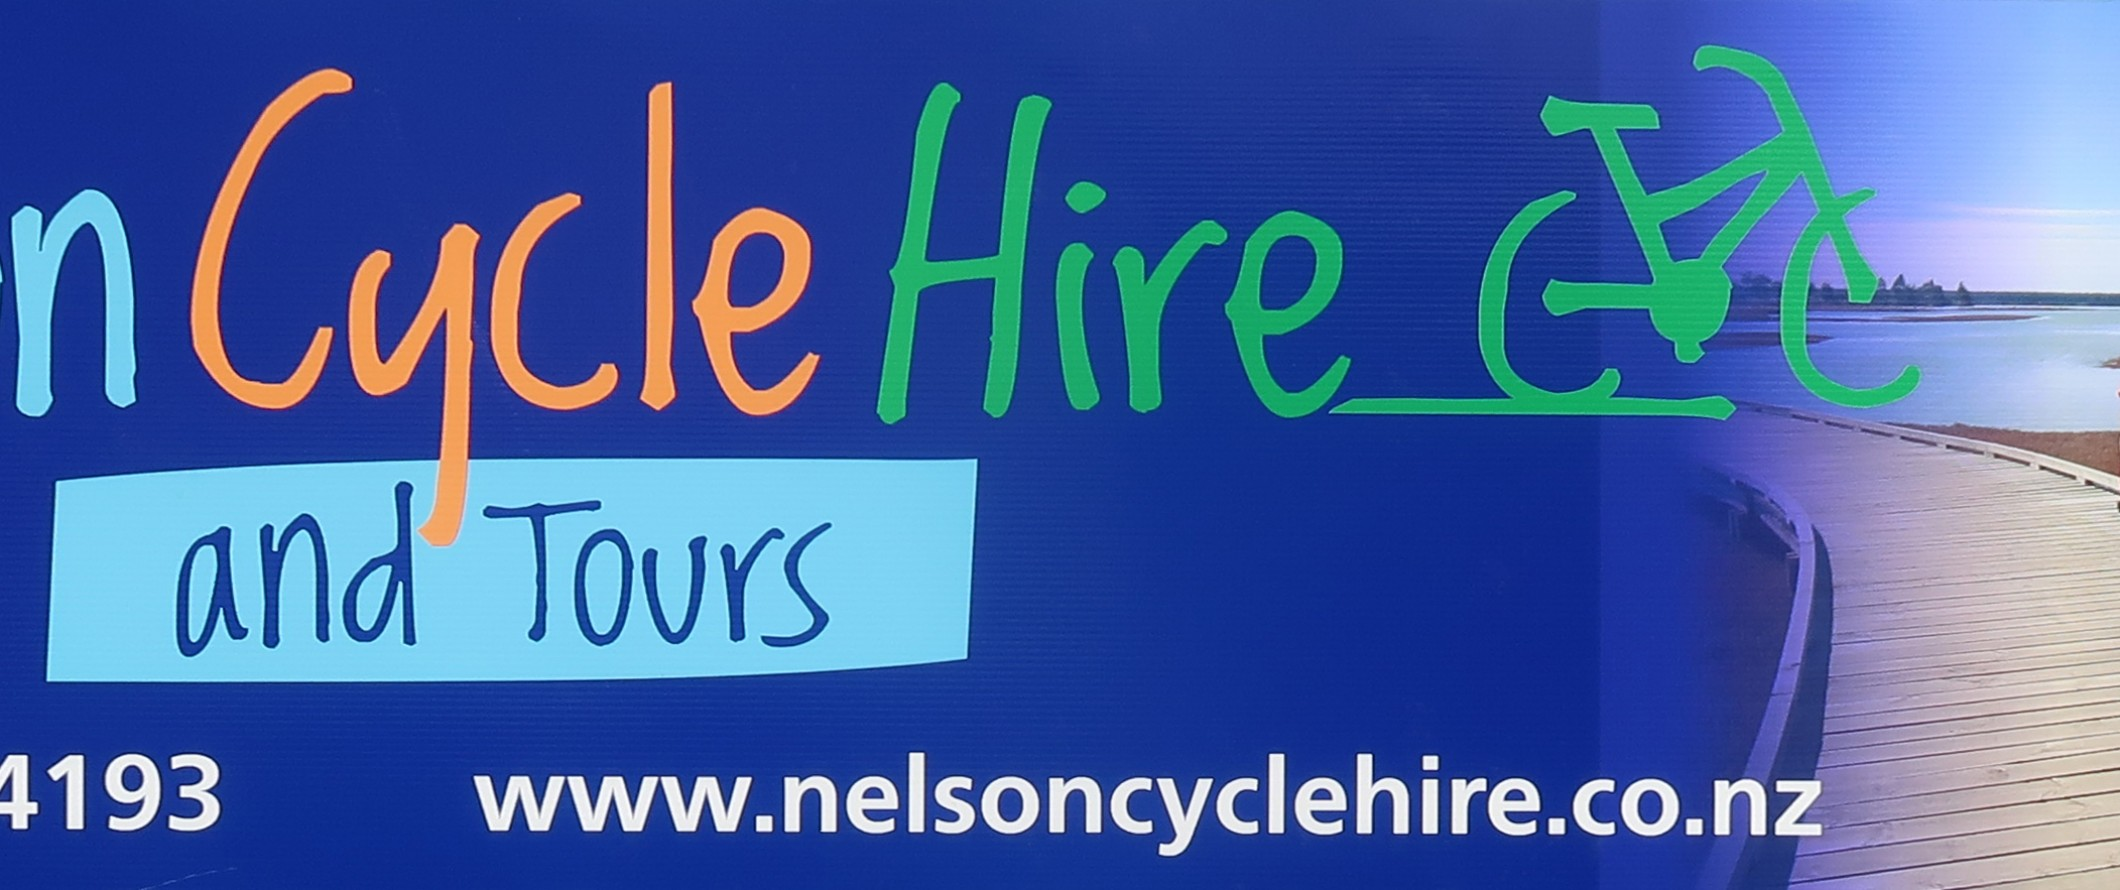 Nelson Cycle Hire Banner